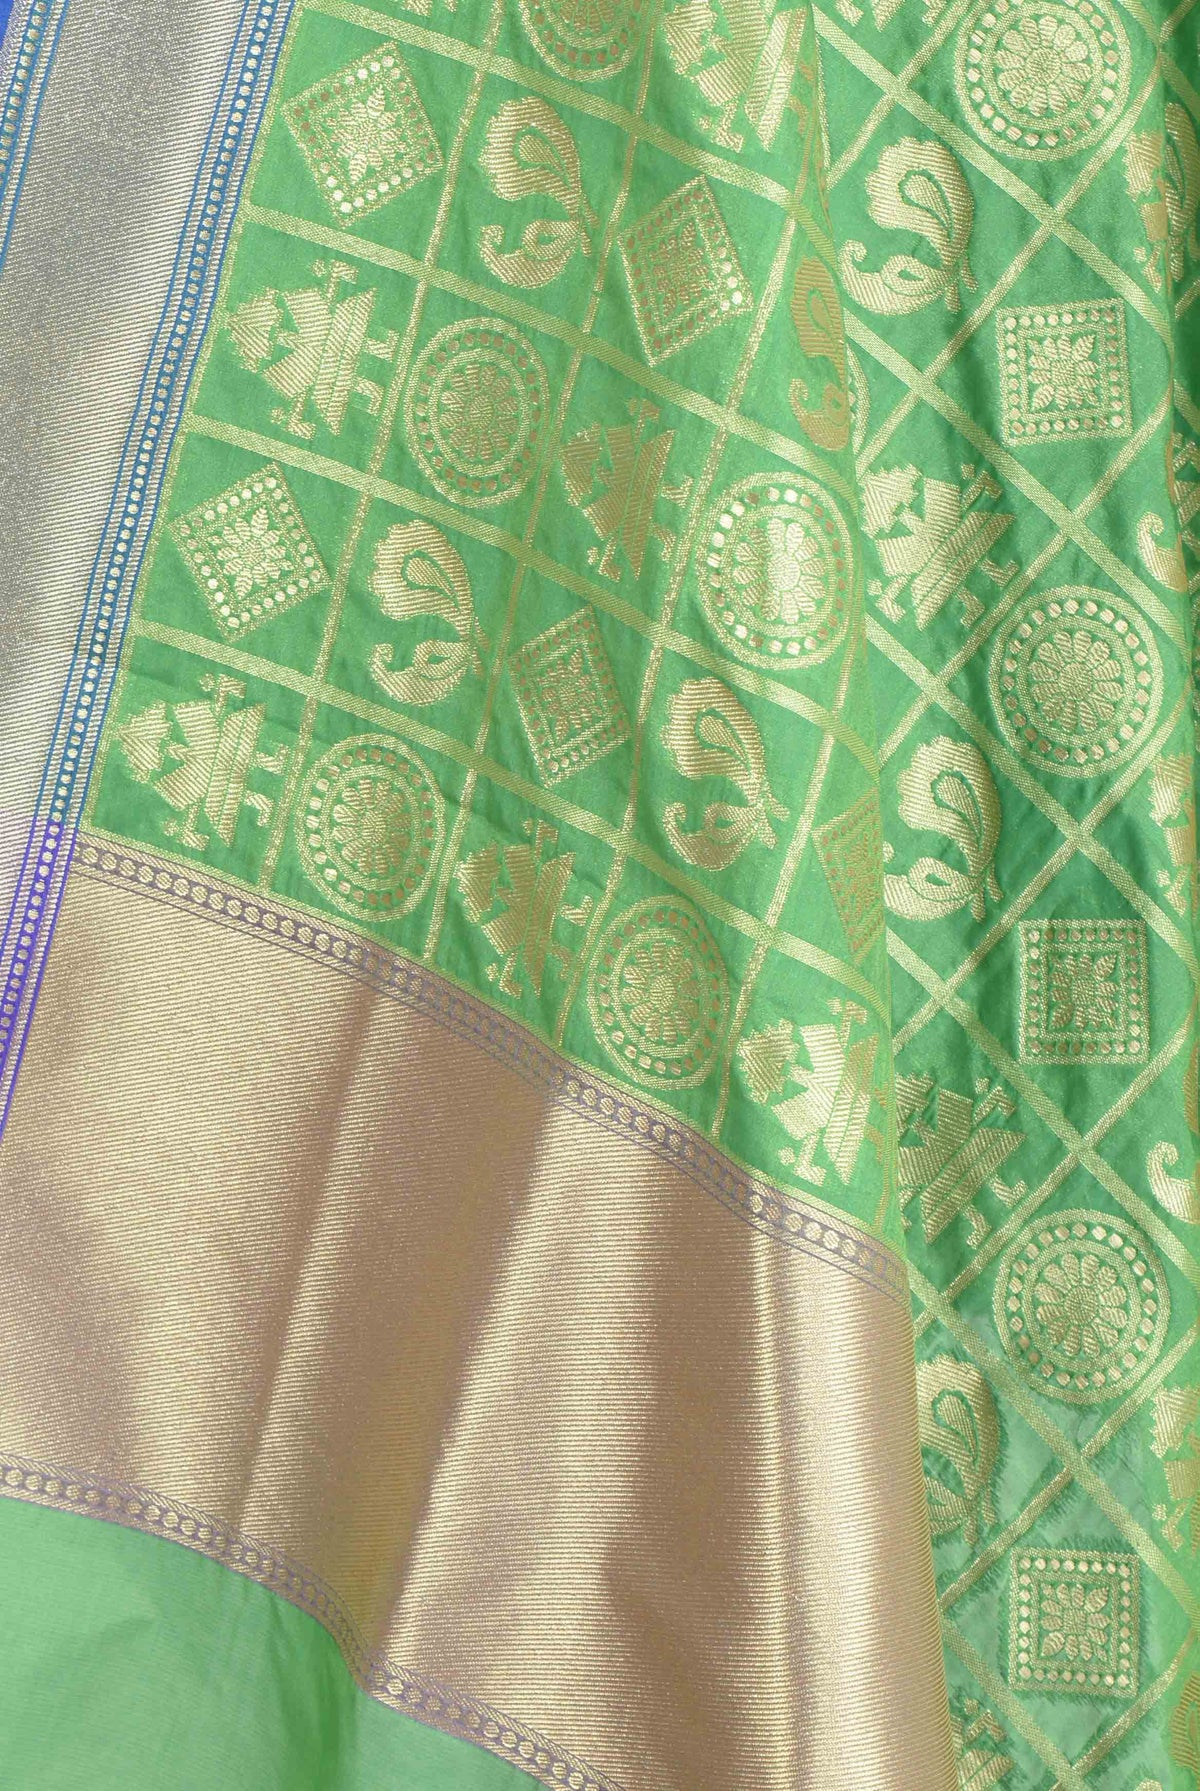 Green dupatta with figures in grid pattern (2) Closeup